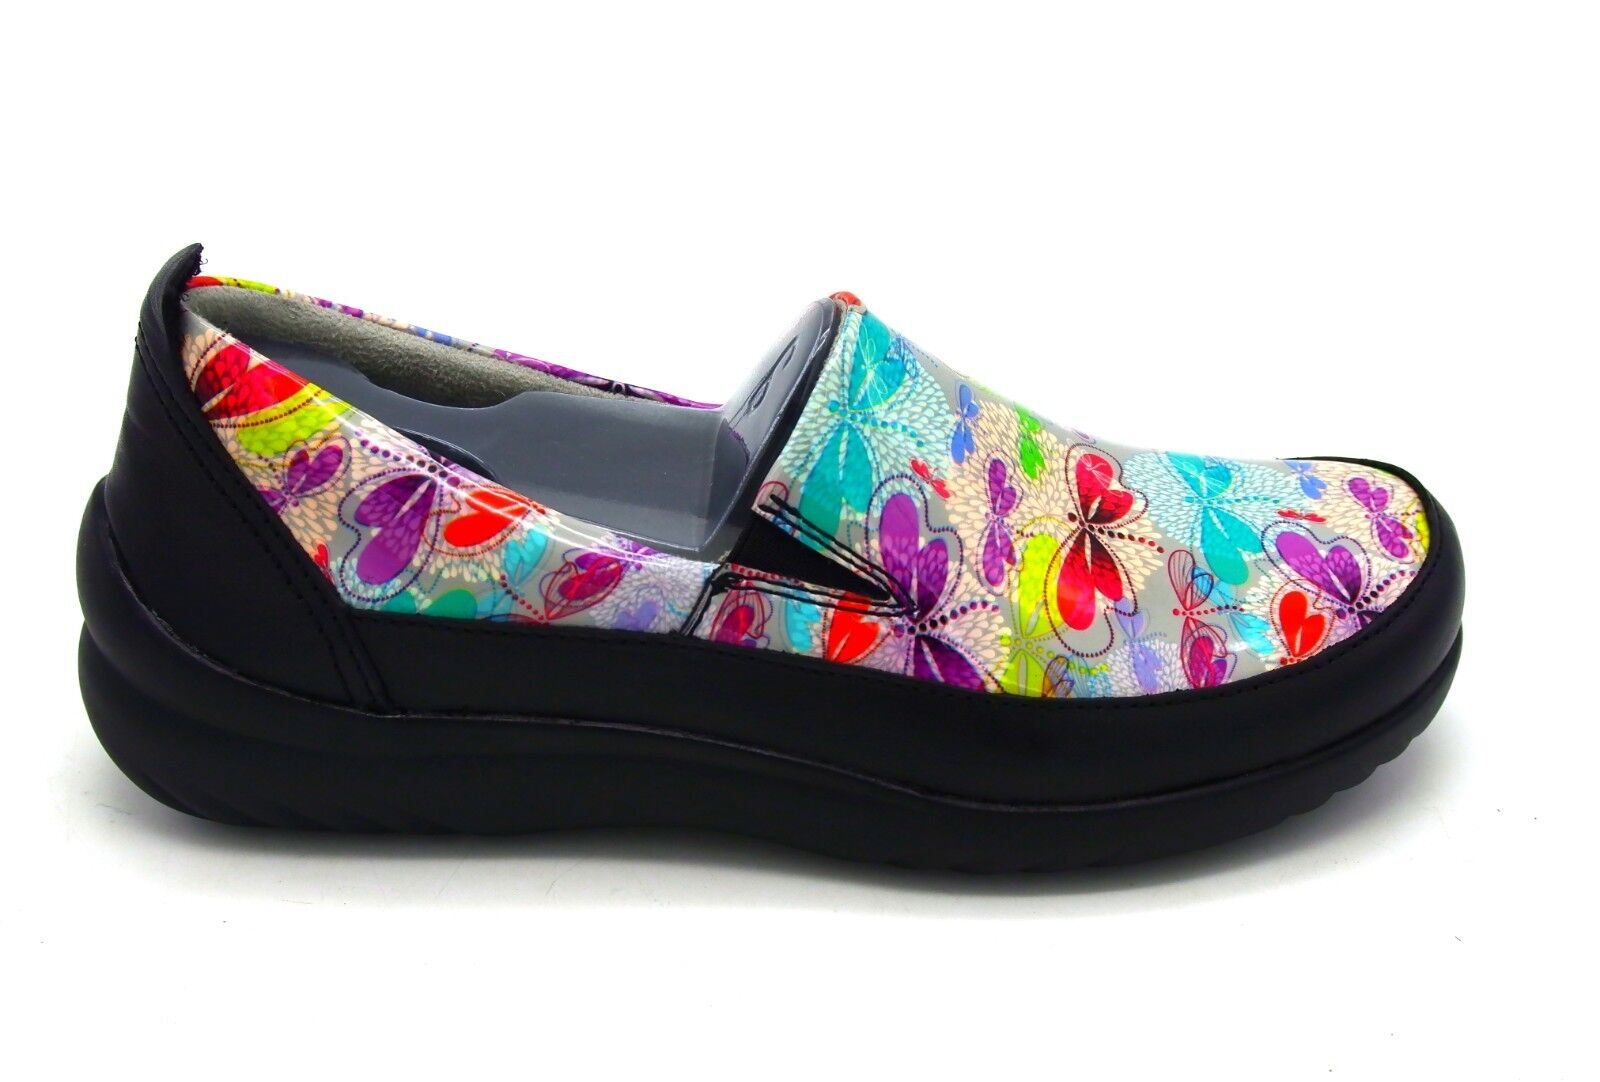 New Klogs Footwear USA Women's Ashbury Spring Dragonfly Patent Slip On shoes